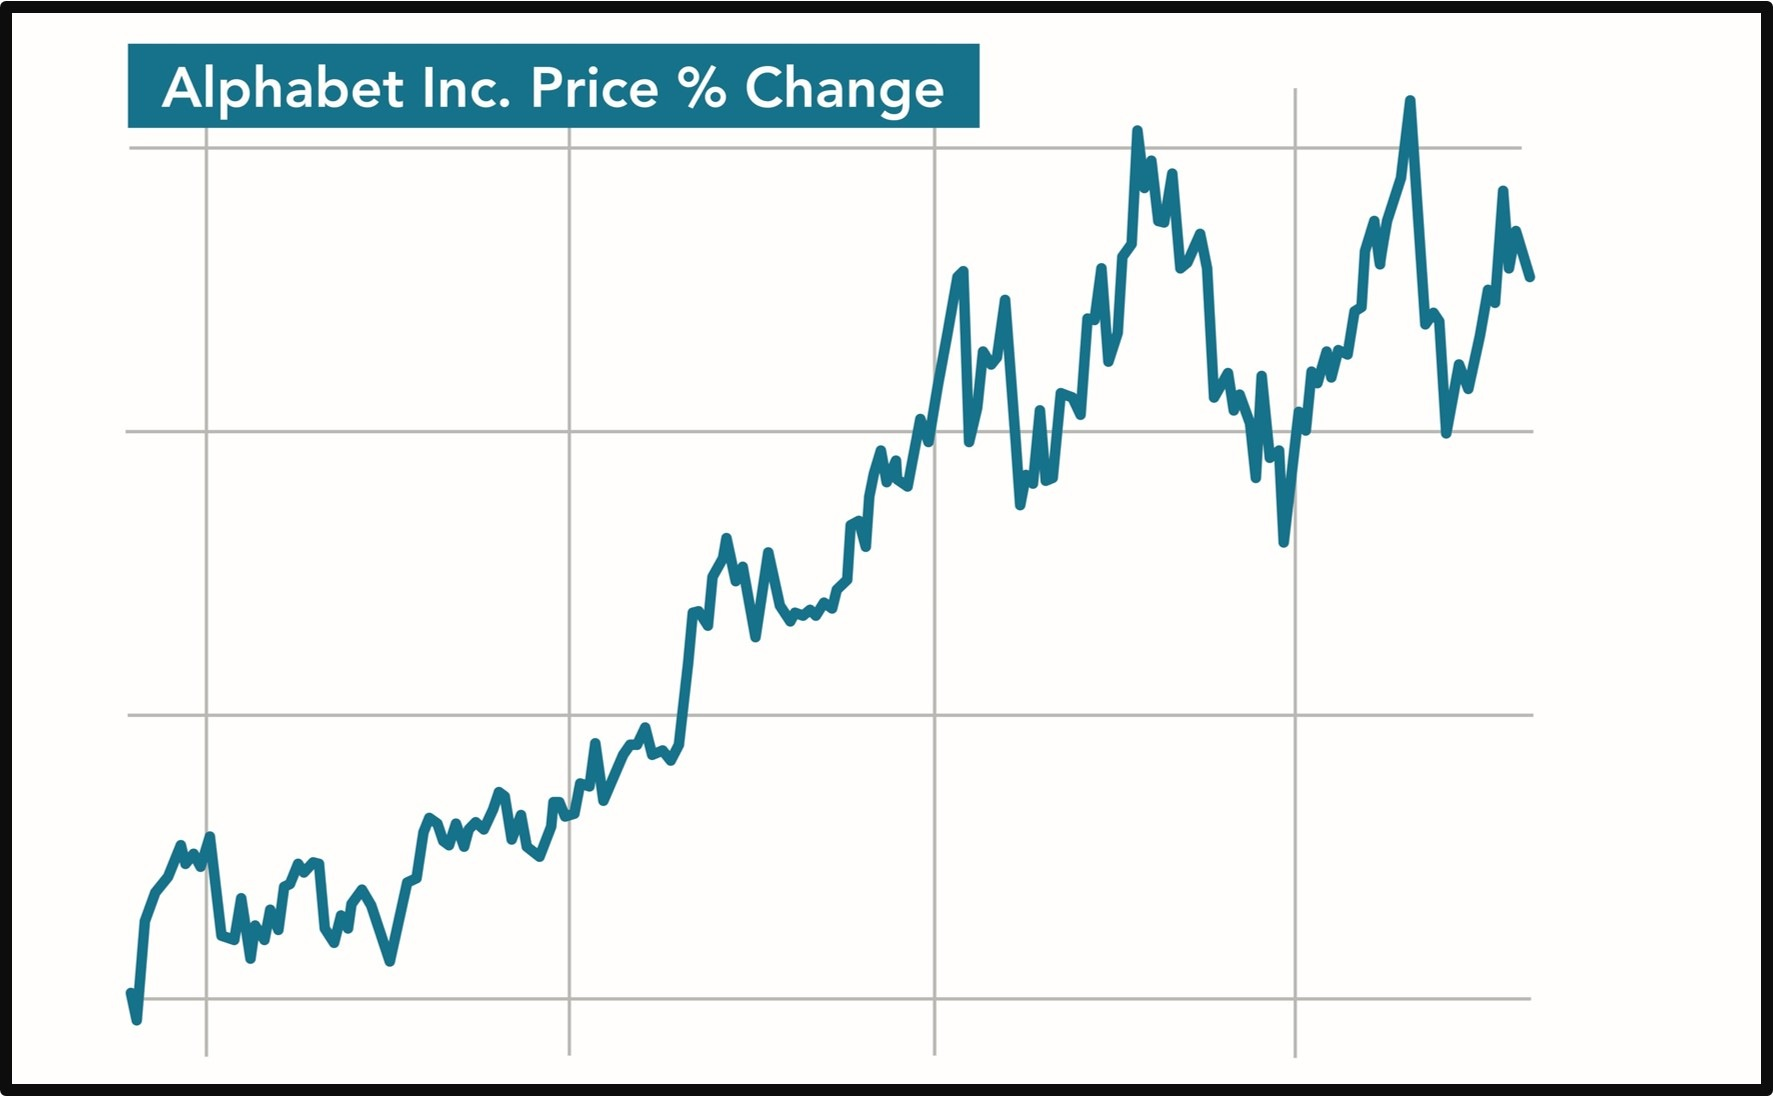 Chart showing the price % change of Alphabet, the parent company of Google.